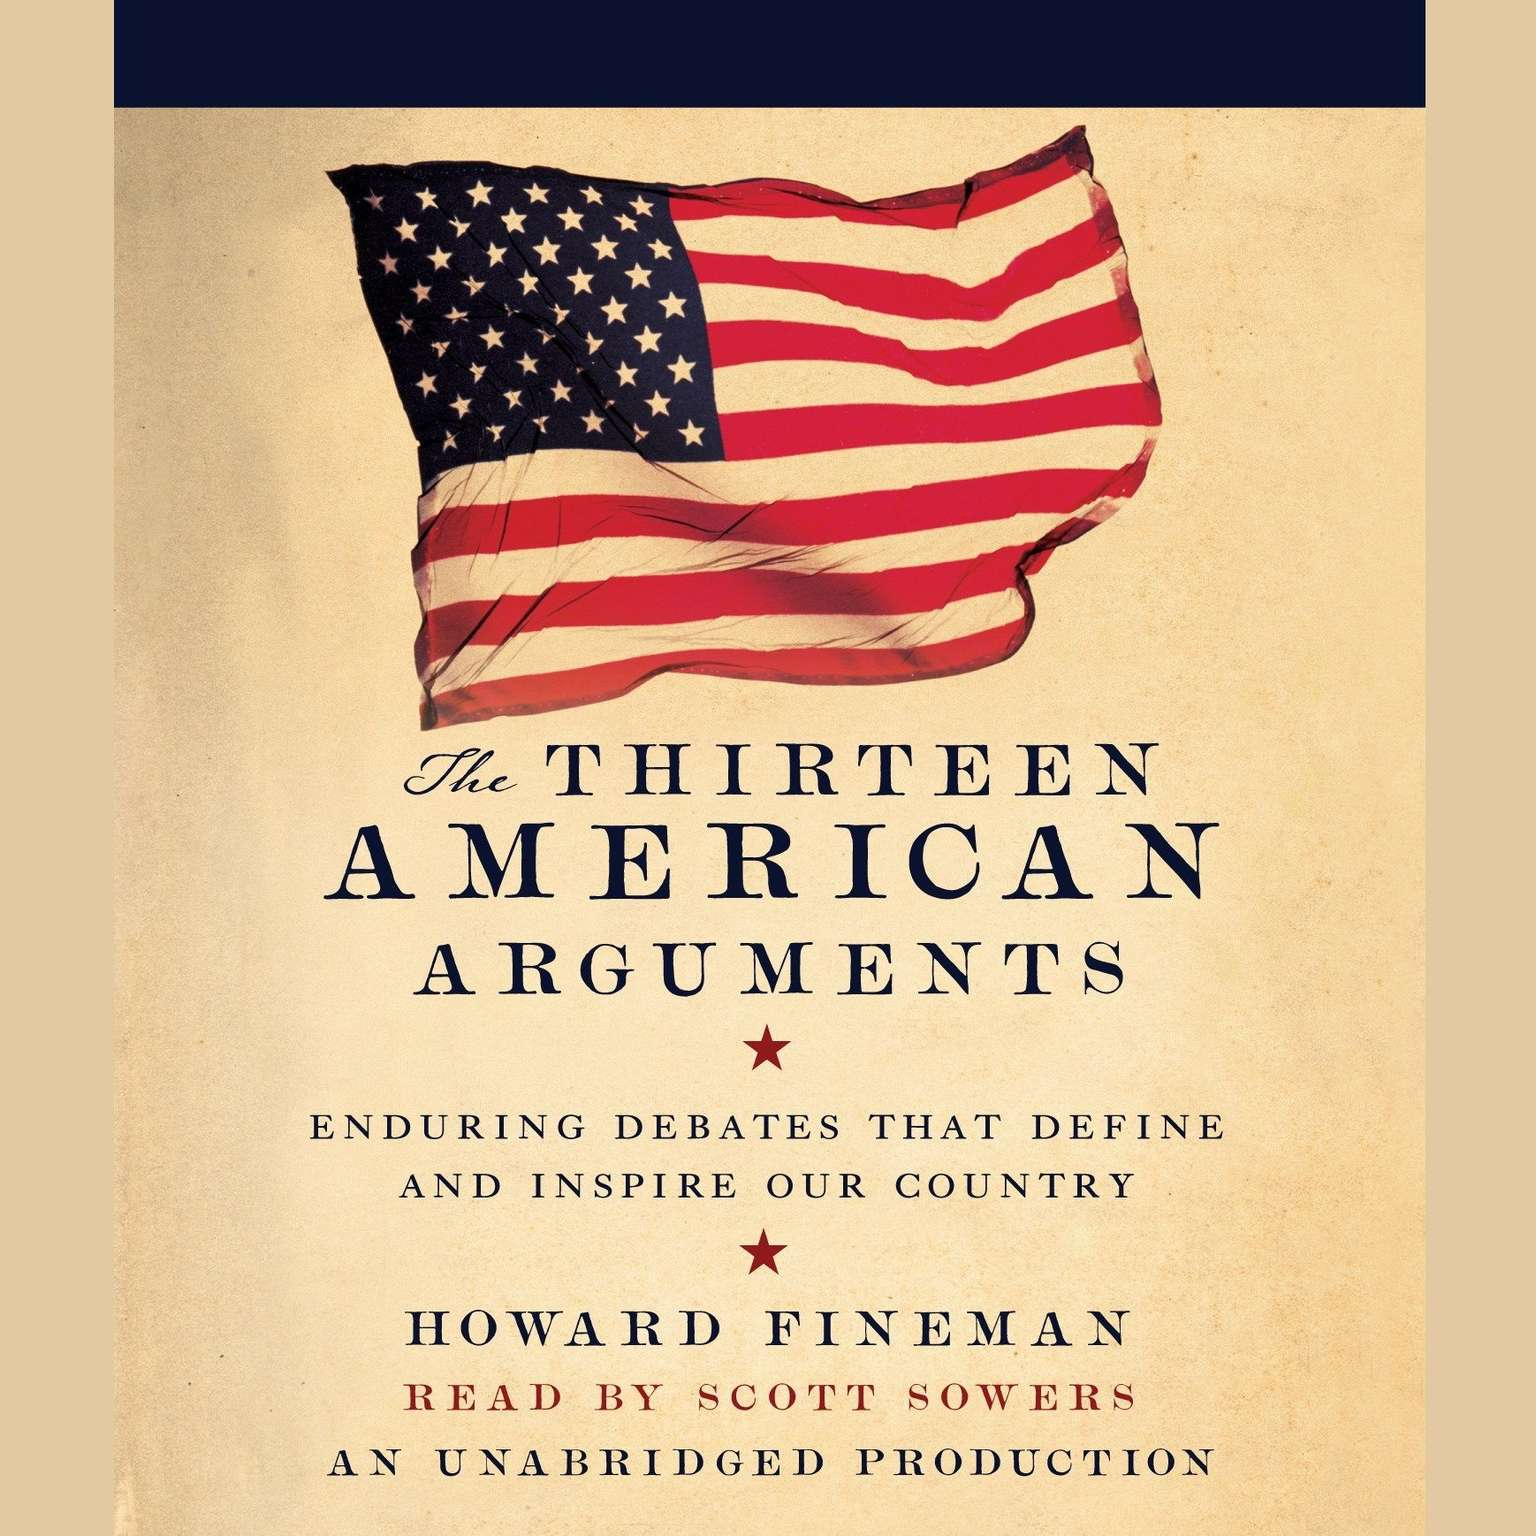 Printable The Thirteen American Arguments: Enduring Debates That Inspire and Define Our Nation Audiobook Cover Art